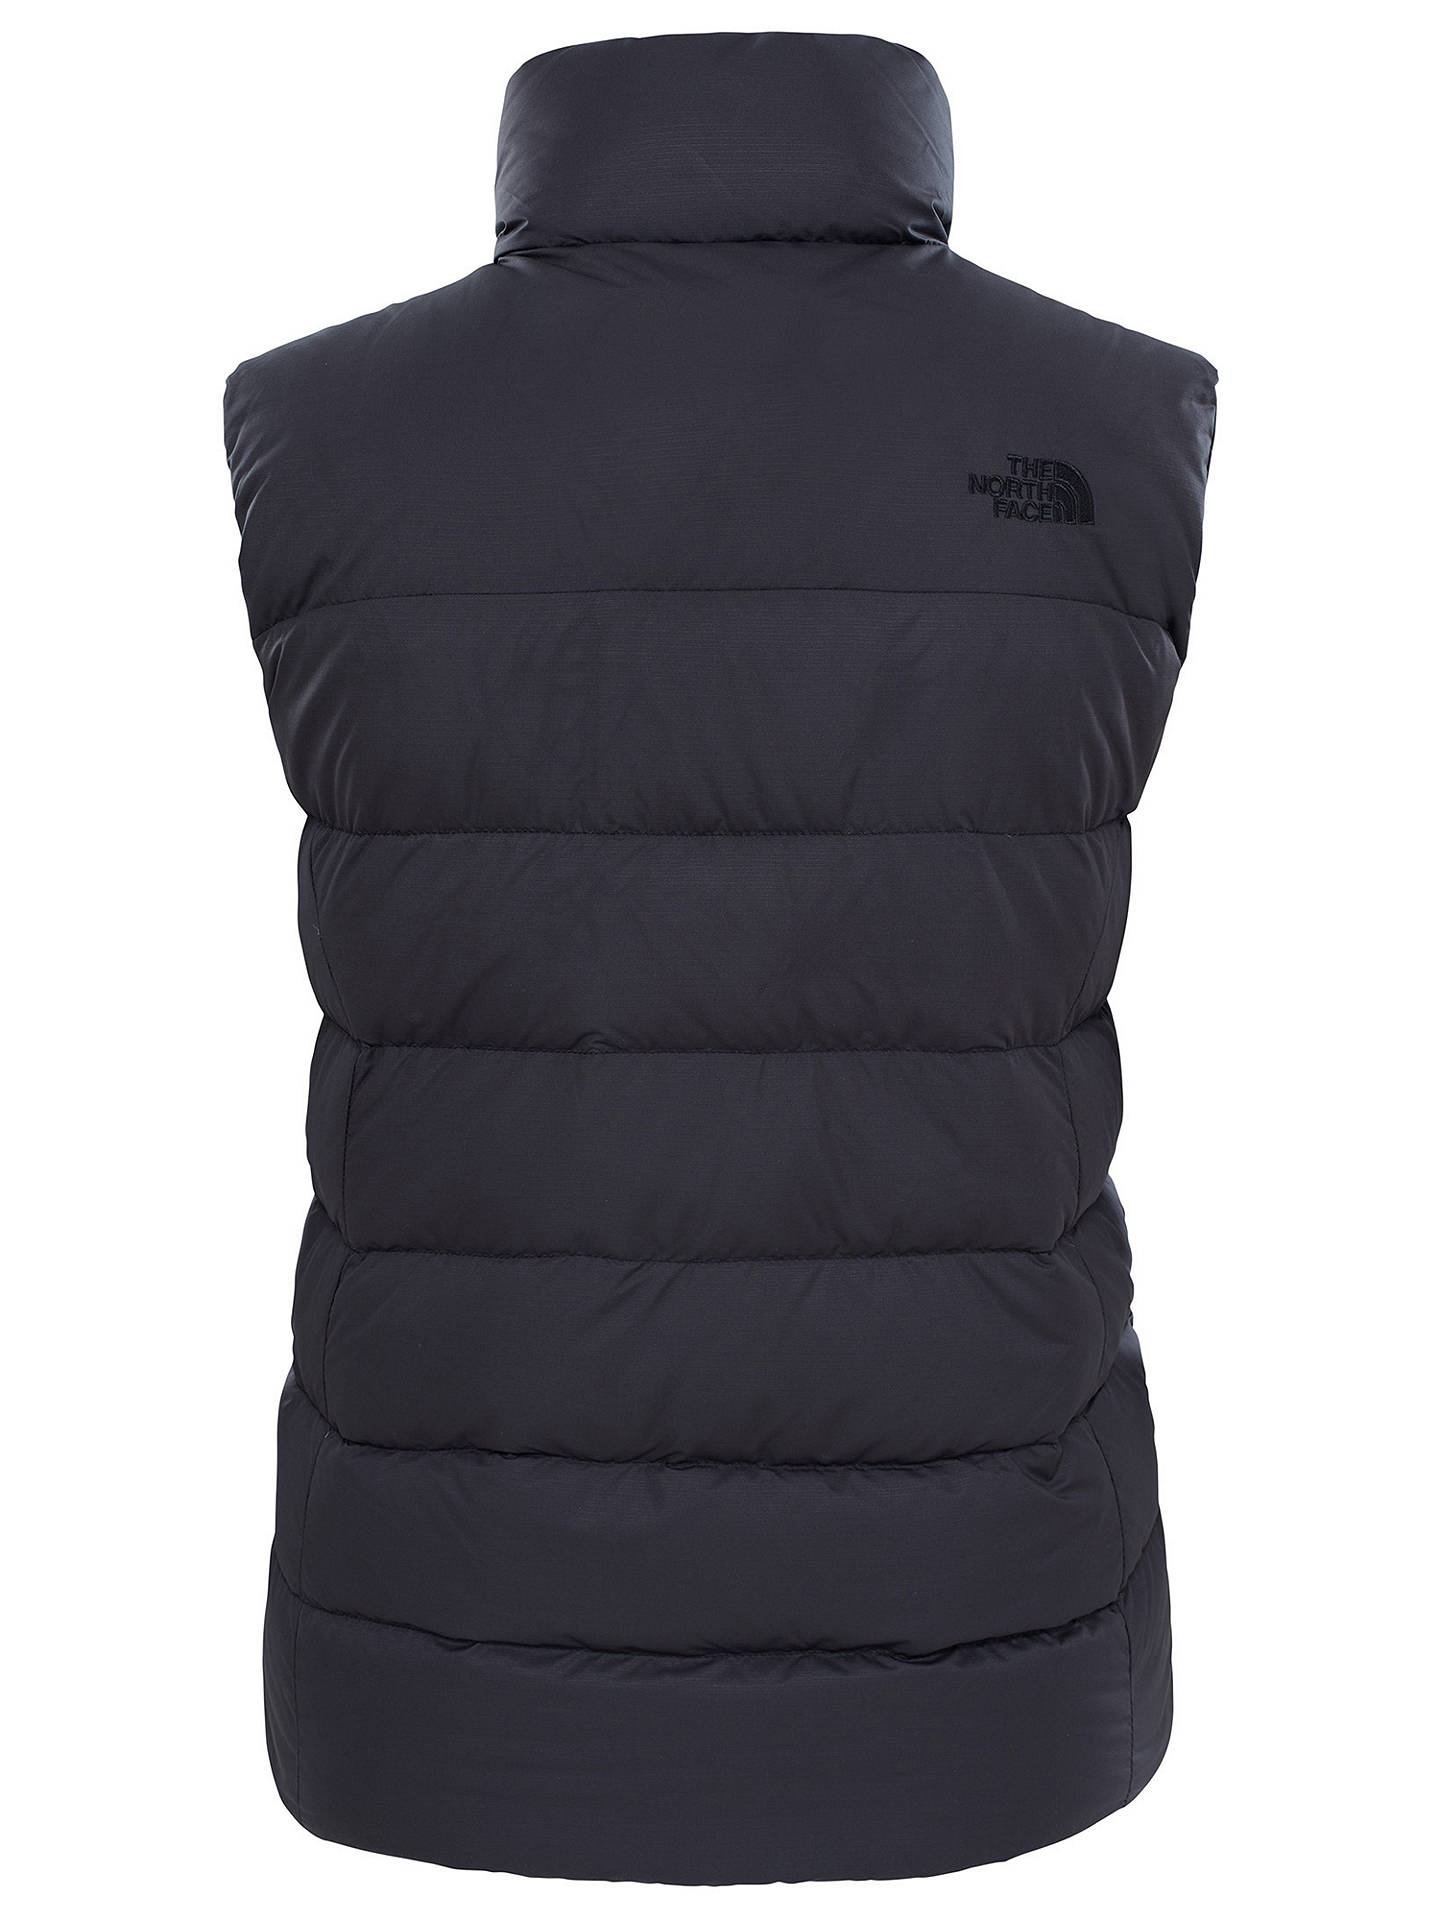 Buy The North Face Nuptse Women's Insulated Gilet, Black, M Online at johnlewis.com